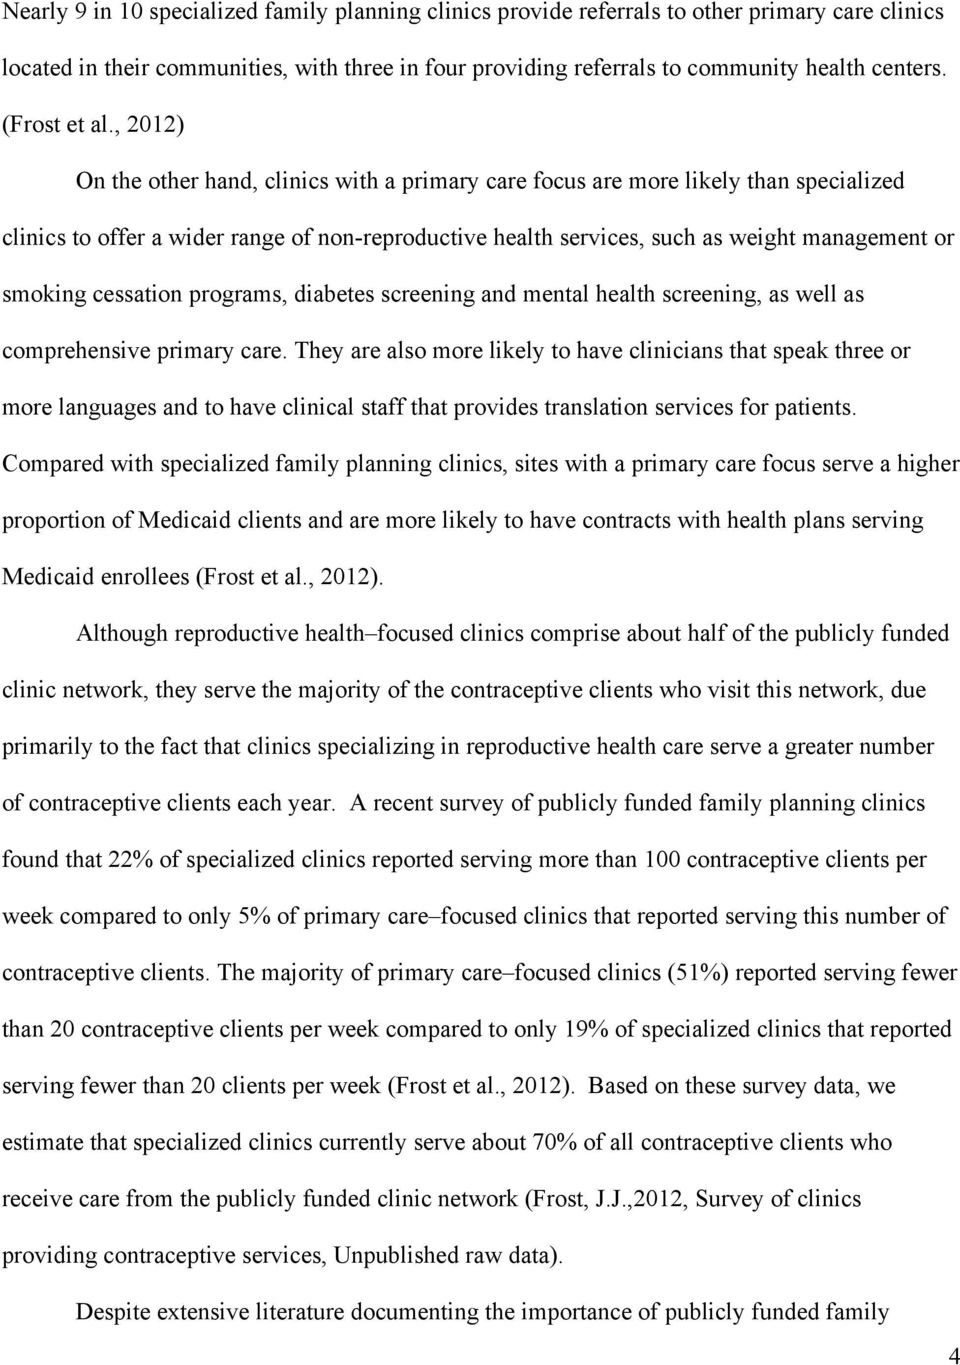 , 2012) On the other hand, clinics with a primary care focus are more likely than specialized clinics to offer a wider range of non-reproductive health services, such as weight management or smoking